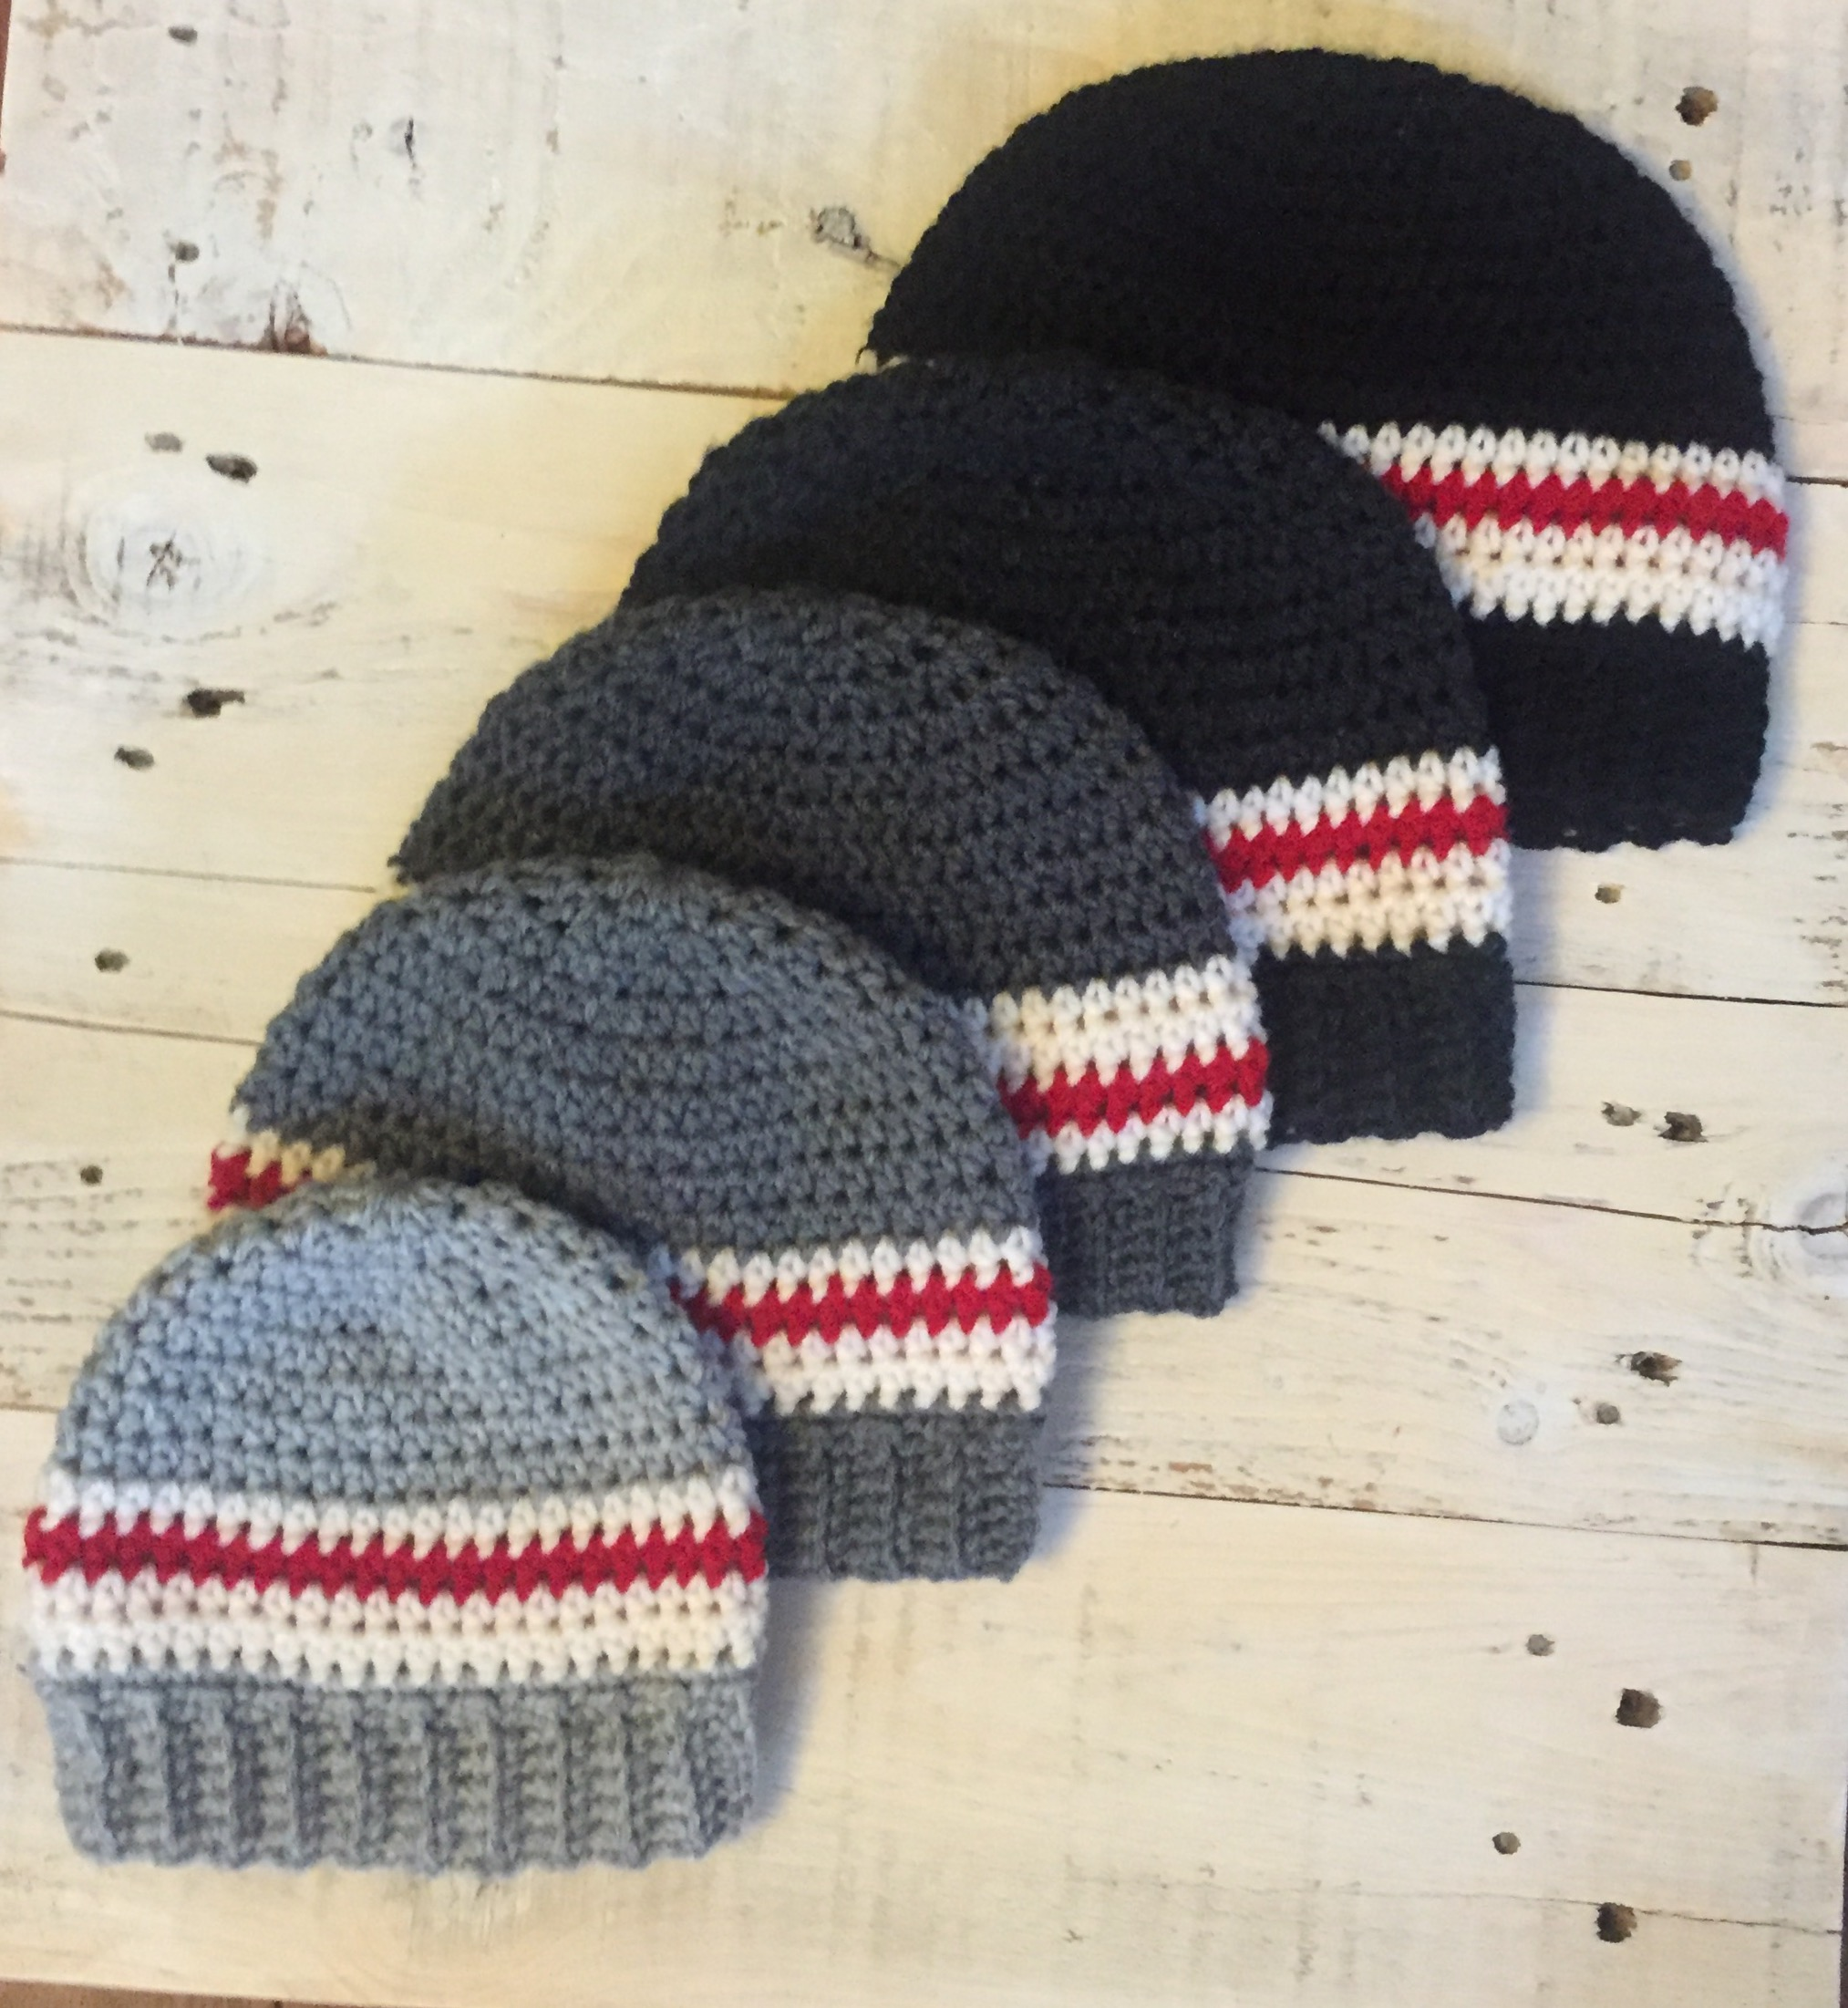 Work Sock Winter Hat Crochet Pattern – Endless Crochet Creations d6dbb8a2a21